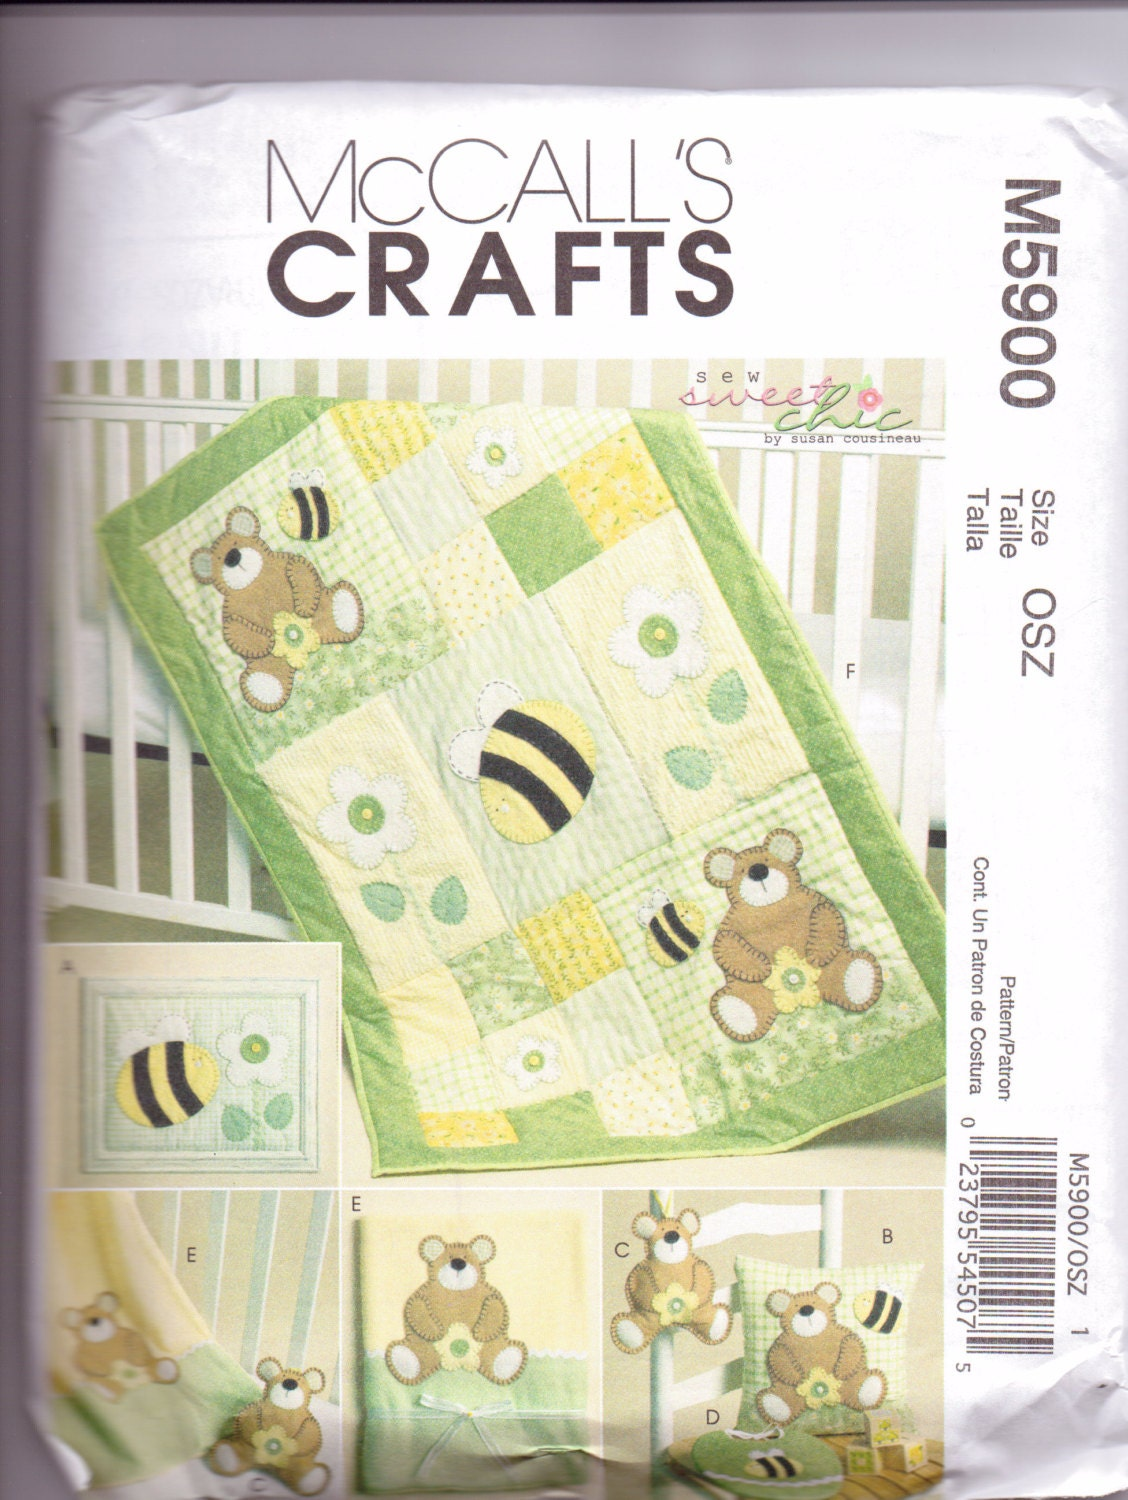 Baby Quilt Patterns Mccalls : Items similar to New McCalls Quilt pattern Bears and Bees baby quilt pillow bib toy extras on Etsy